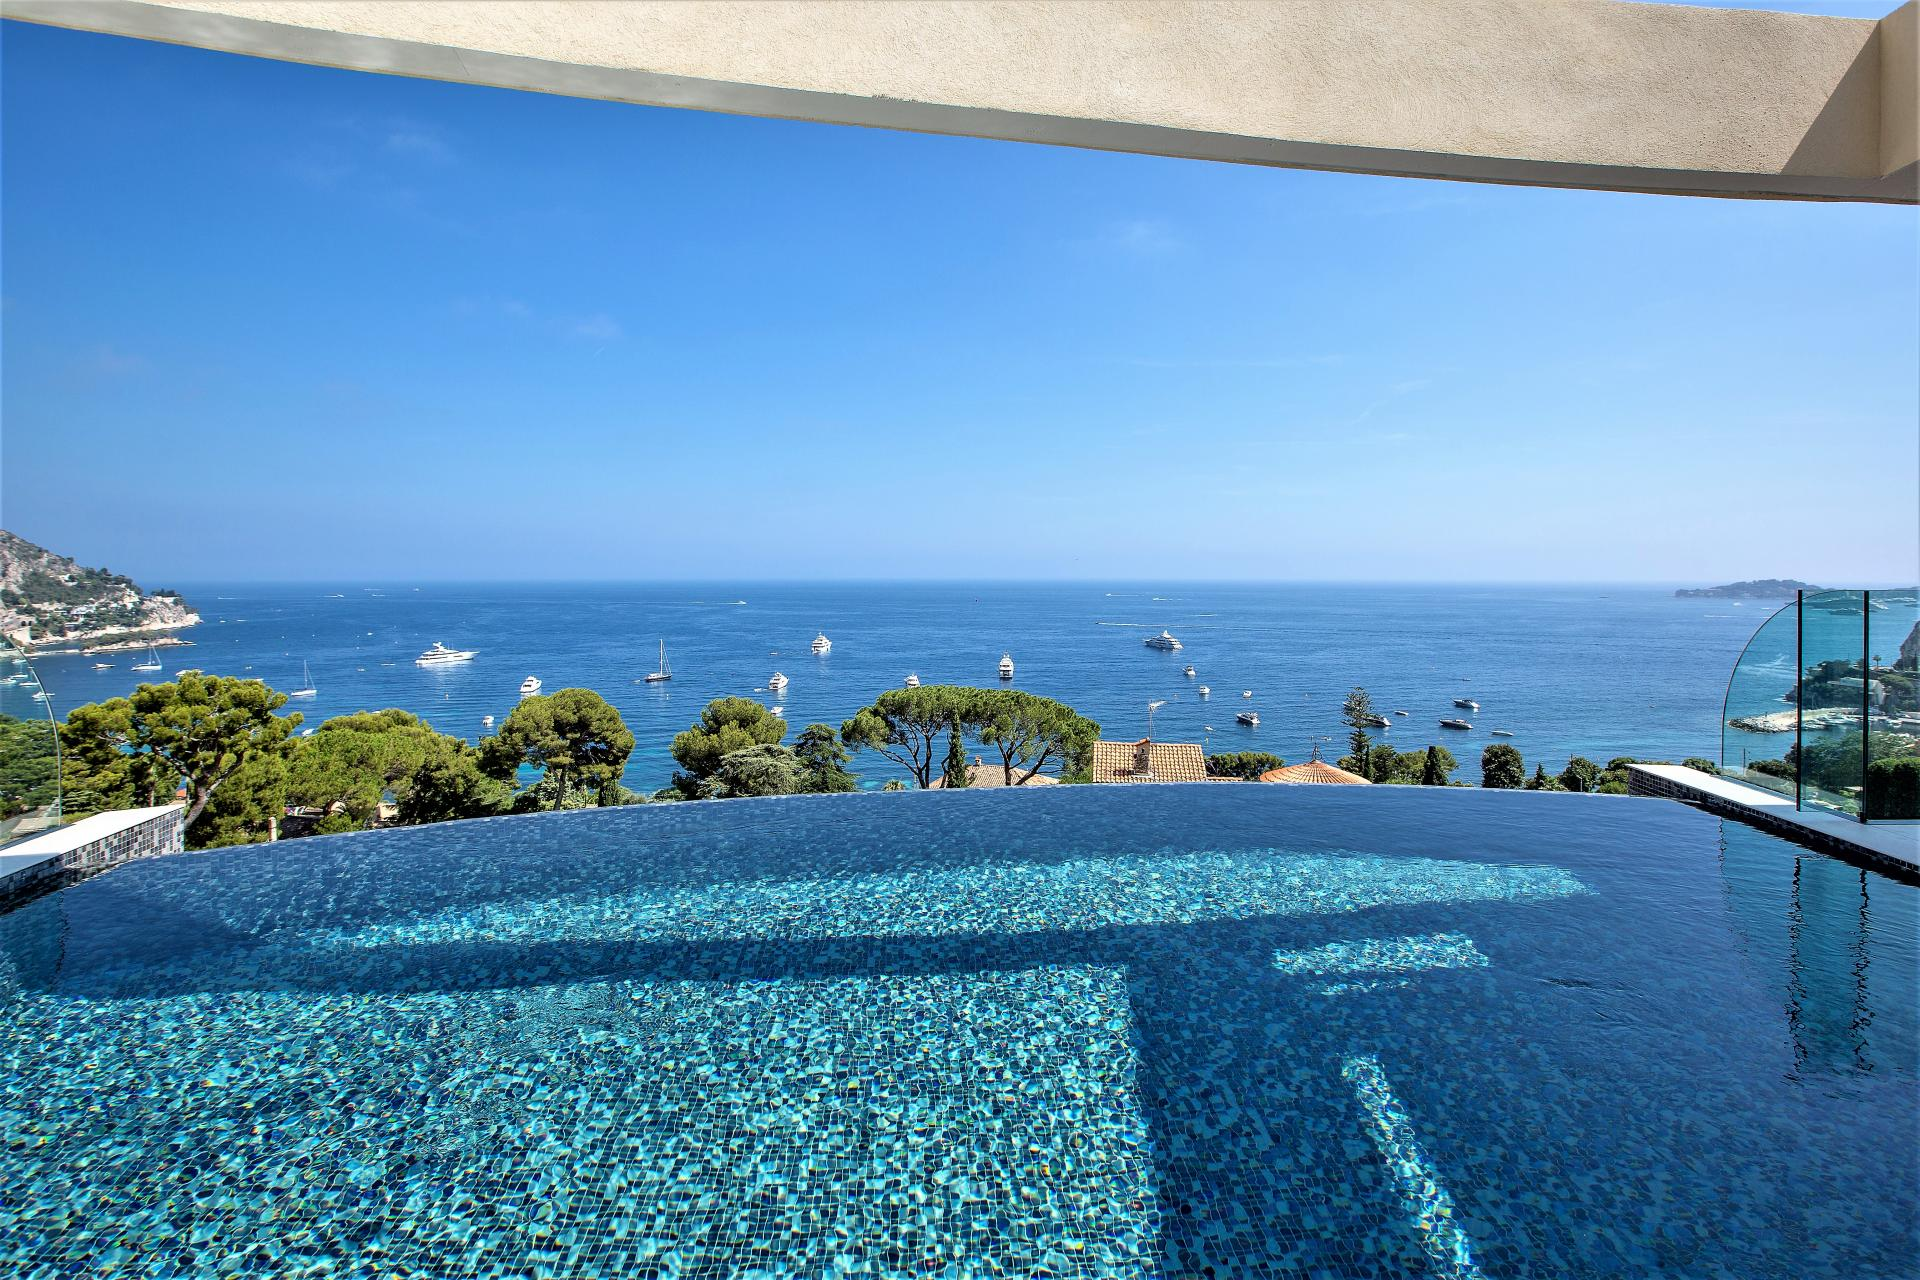 SEA VIEWS FROM VILLA INFINITY IN COTE D'AZUR